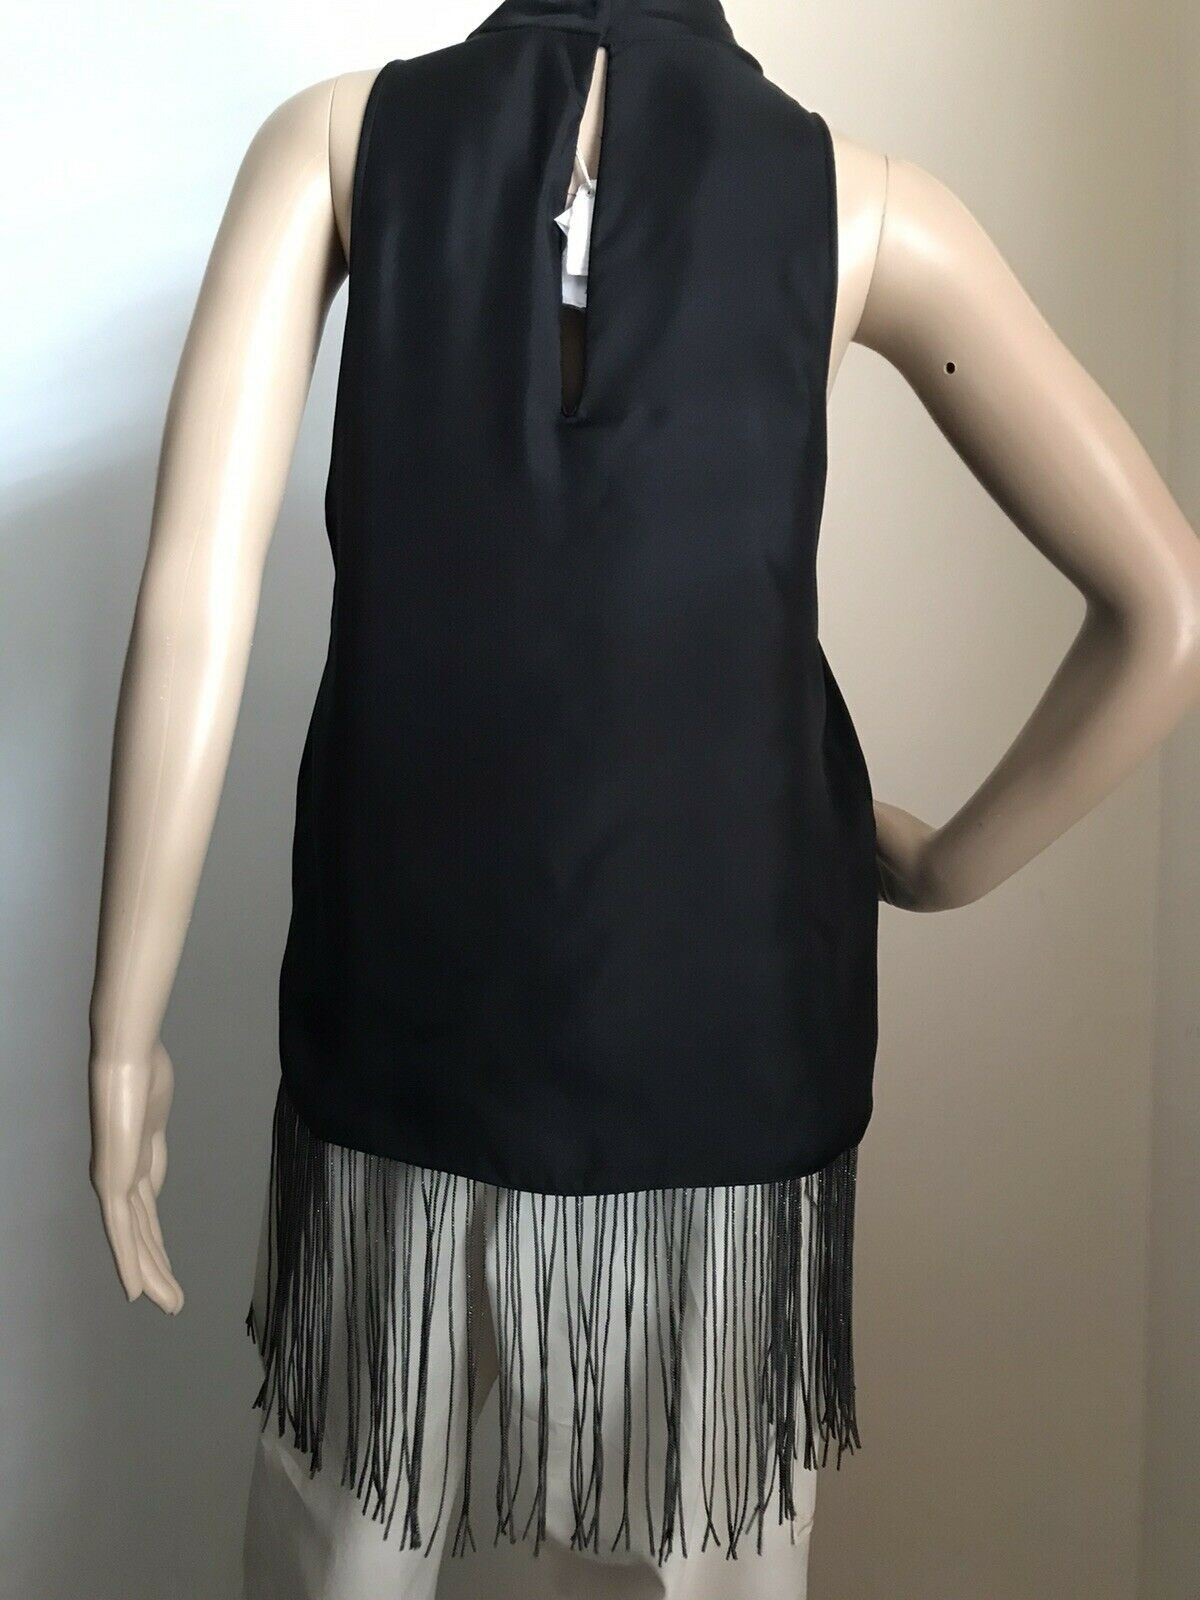 New $3495 Brunello Cucinelli Women's Sleeveless Silk Blouse Black M Italy